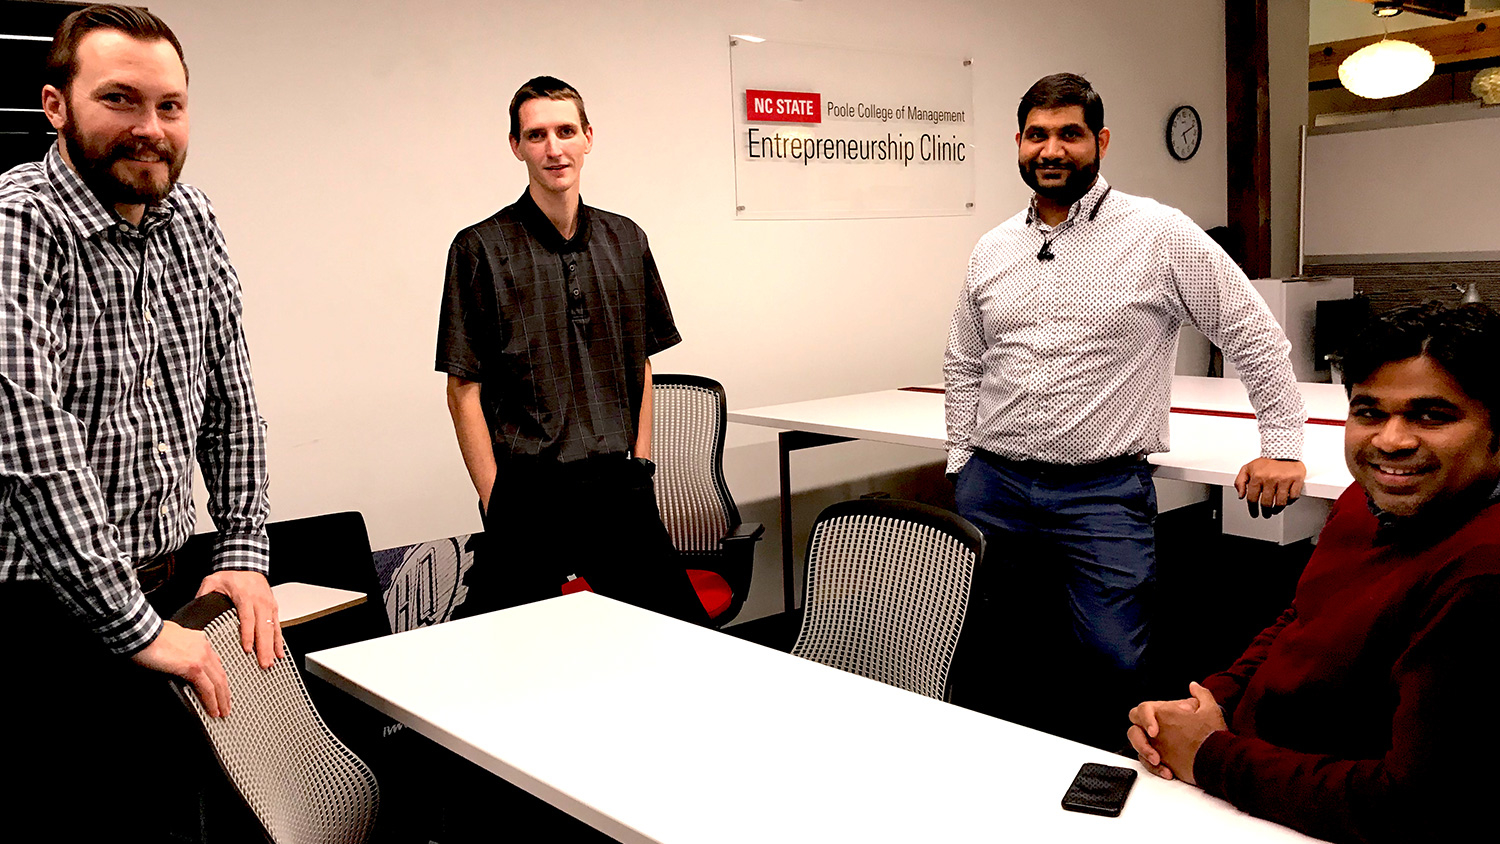 MBA team members meeting at the NC State Entrepreneurship Clinic, left to right: Cody Shipman, Taylor Utecht, Shyam Ram, and Krupa Stephen Gadde